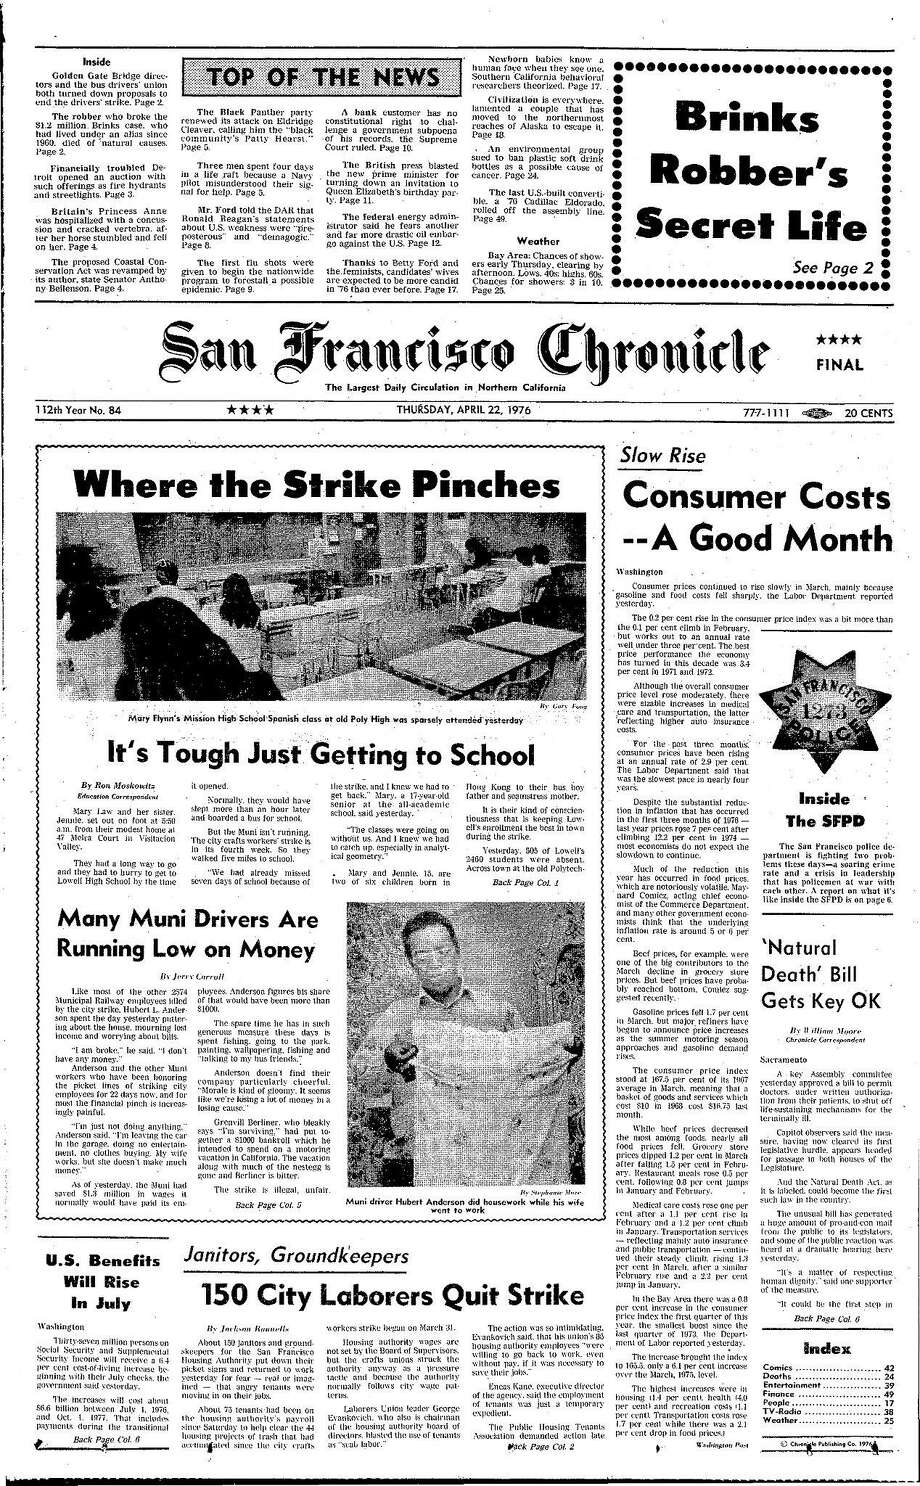 Chronicle Covers: Day 22 of the brutal 38-day city strike